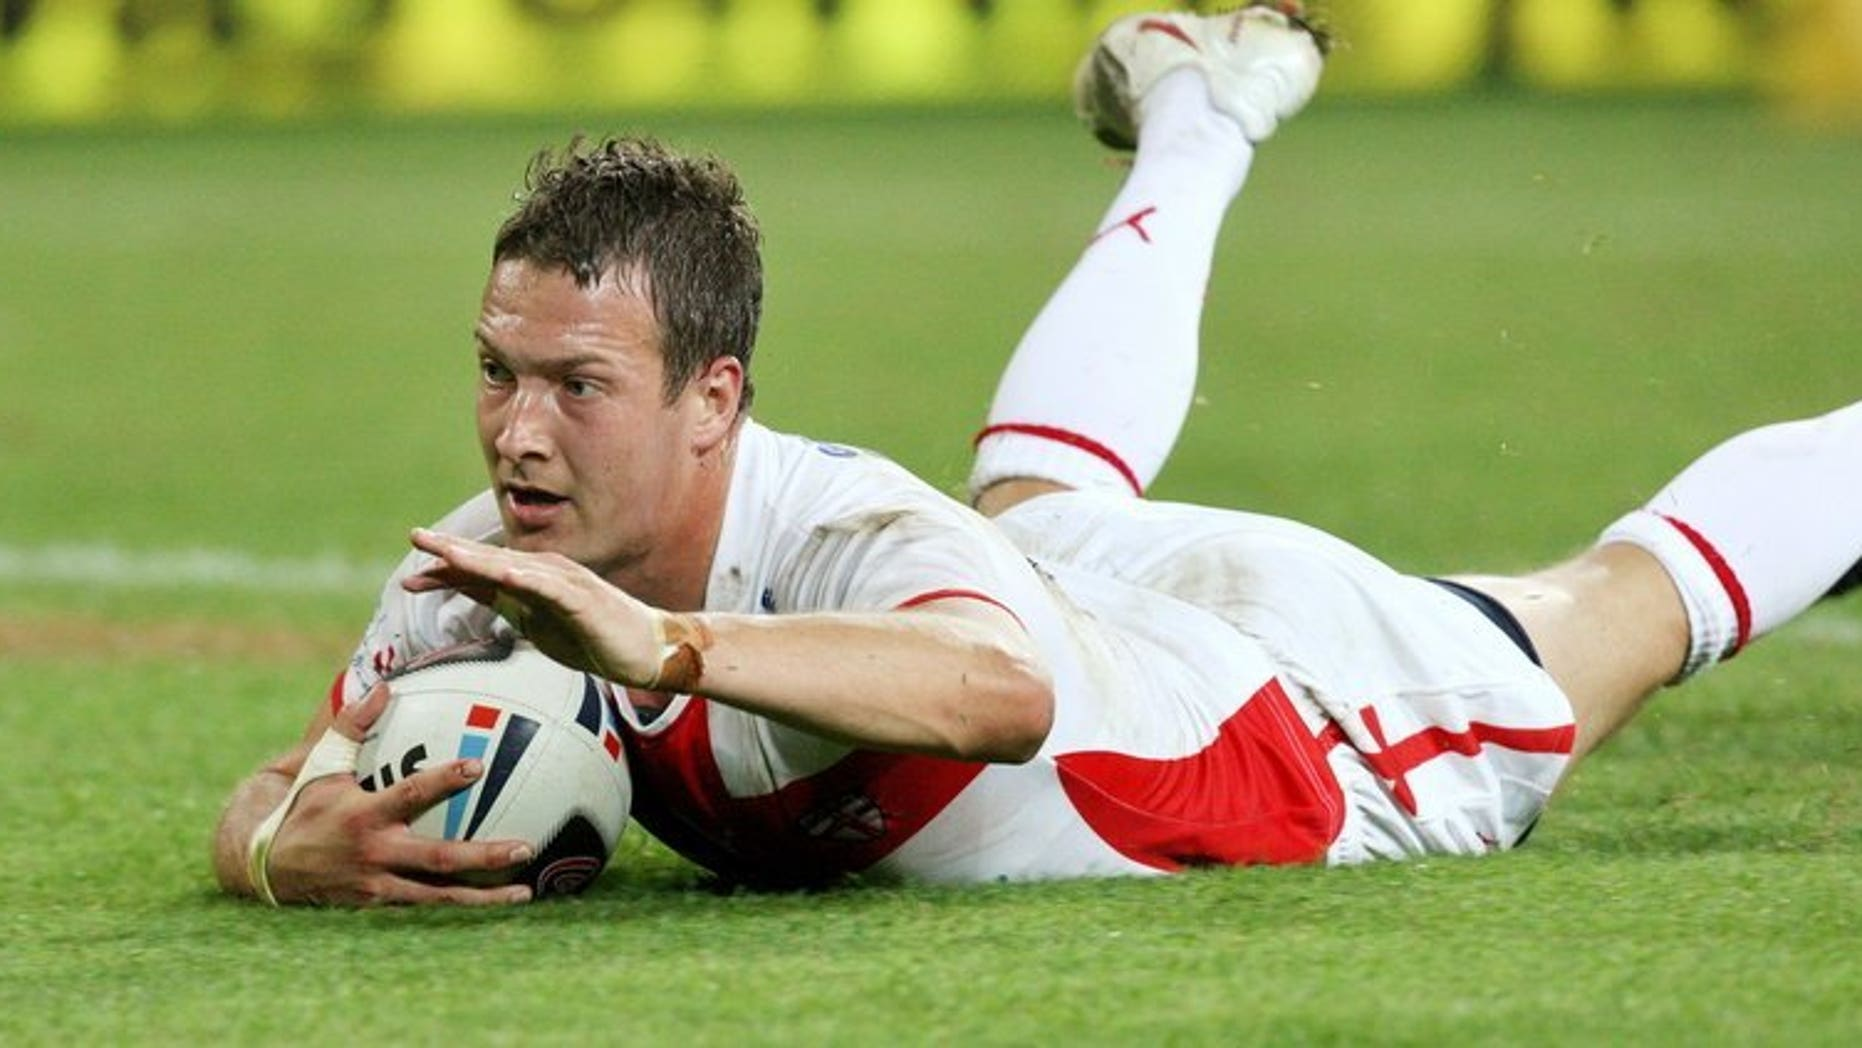 England's Danny McGuire, in action on November 15, 2008, scored a late drop-goal to put defending Super League champions Leeds into the play-off semi-finals as they sealed an 11-10 win over familiar foes St Helens at Headingley